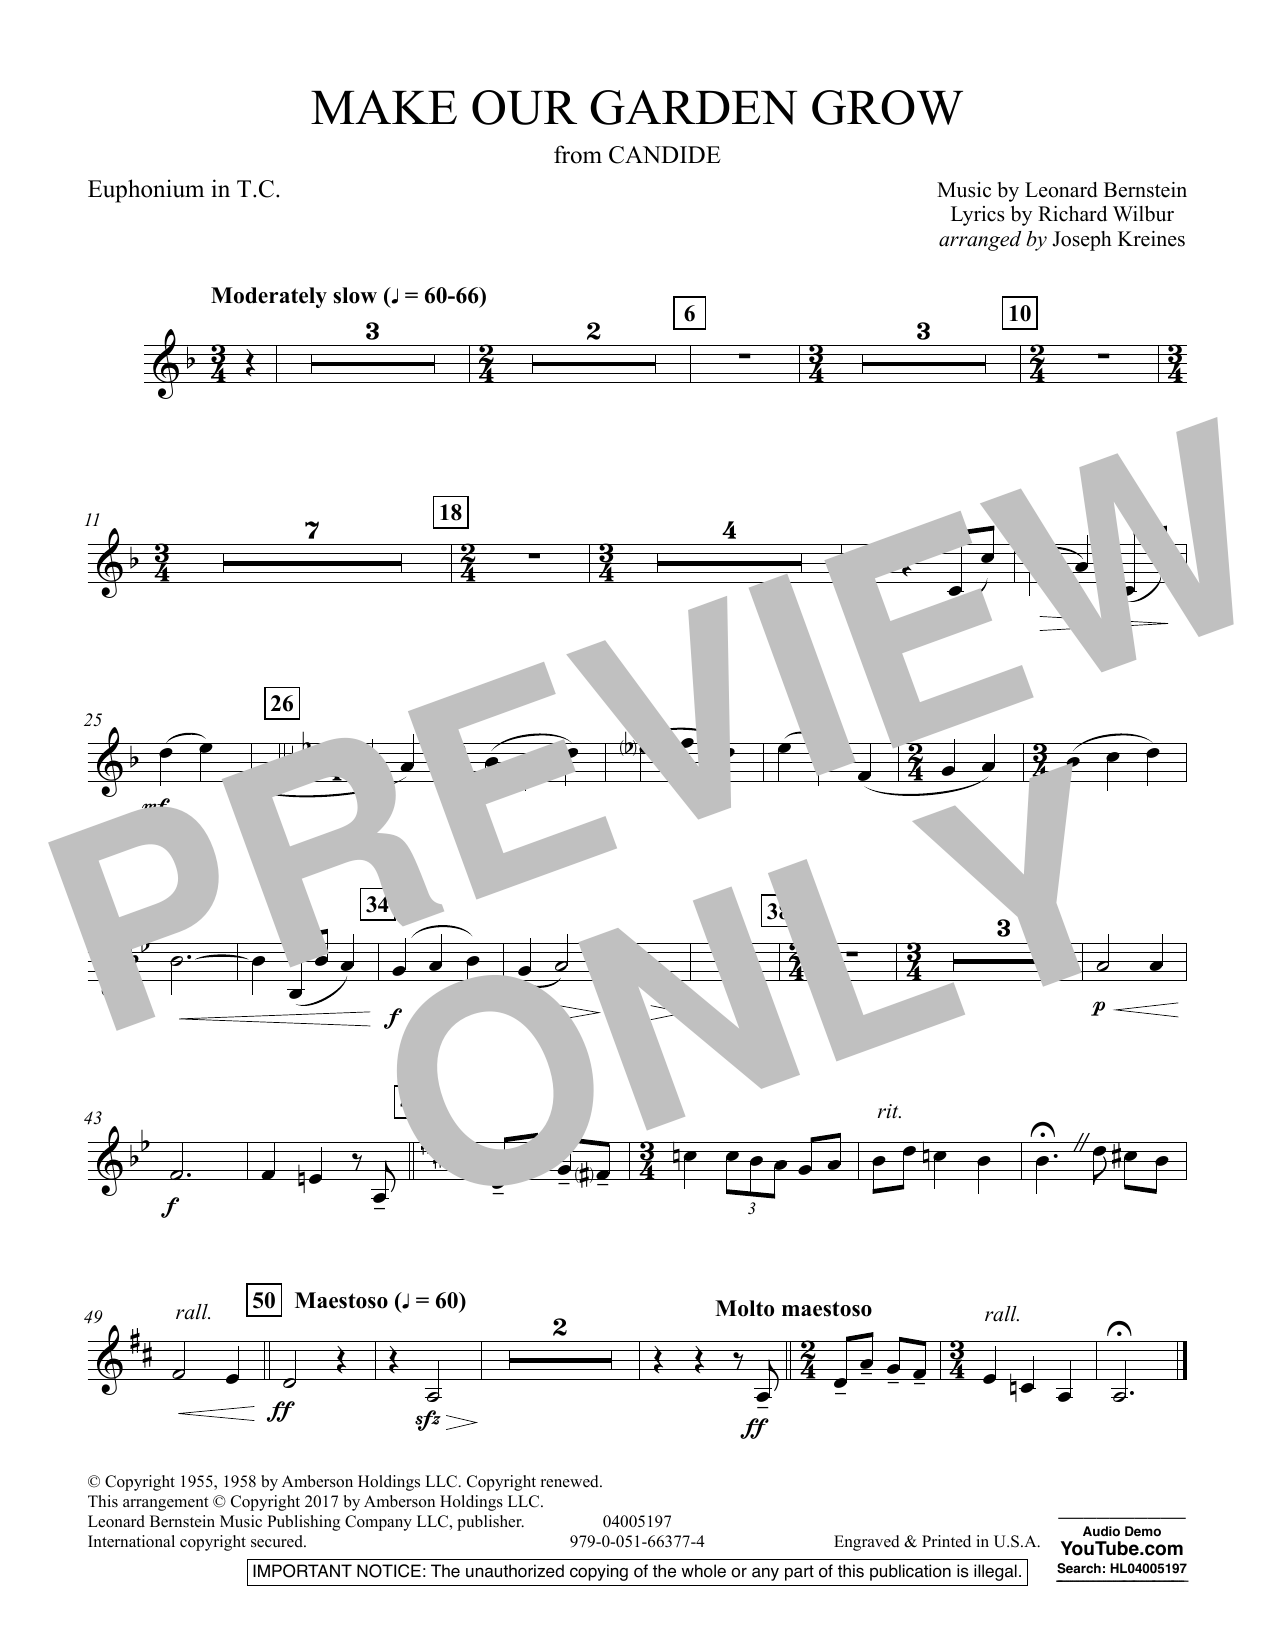 Make Our Garden Grow (from Candide) - Euphonium in Treble Clef (Concert Band)